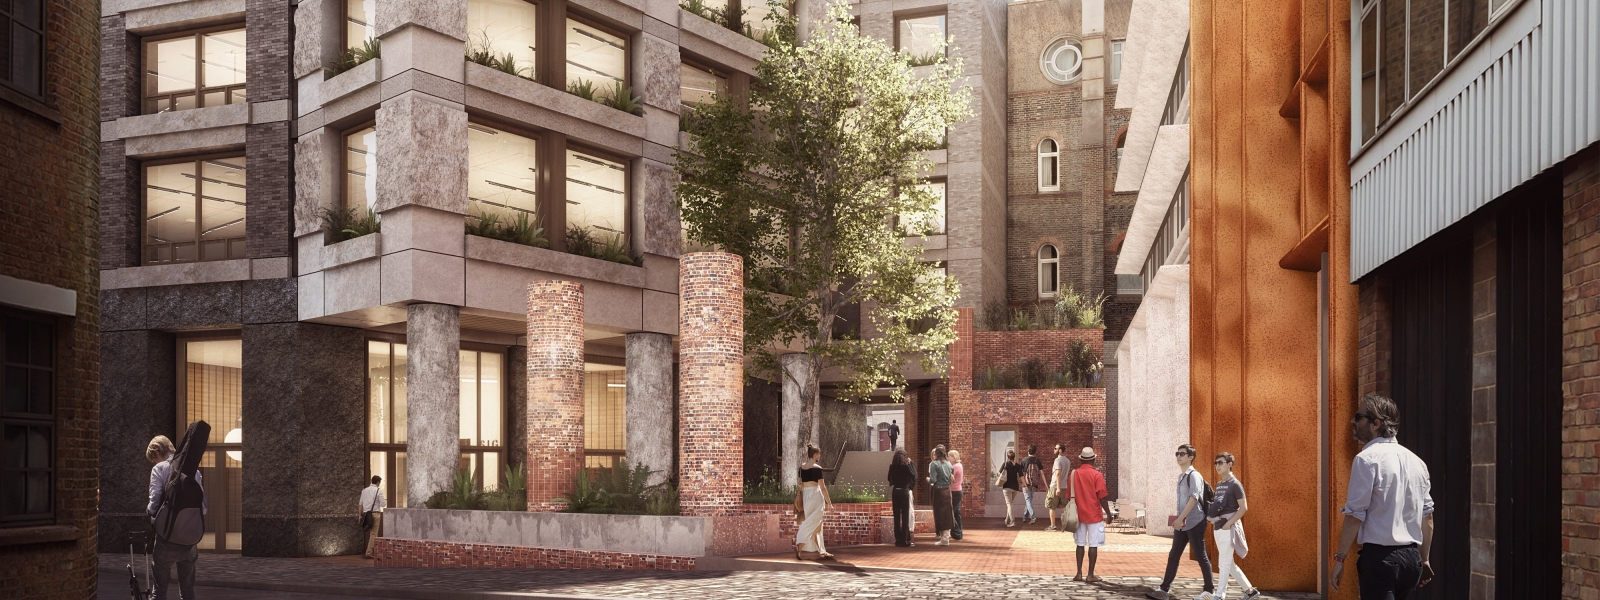 Groveworld secures approval for plans to revitalise the former home of the Royal Throat, Nose and Ear Hospital in London's Knowledge Quarter